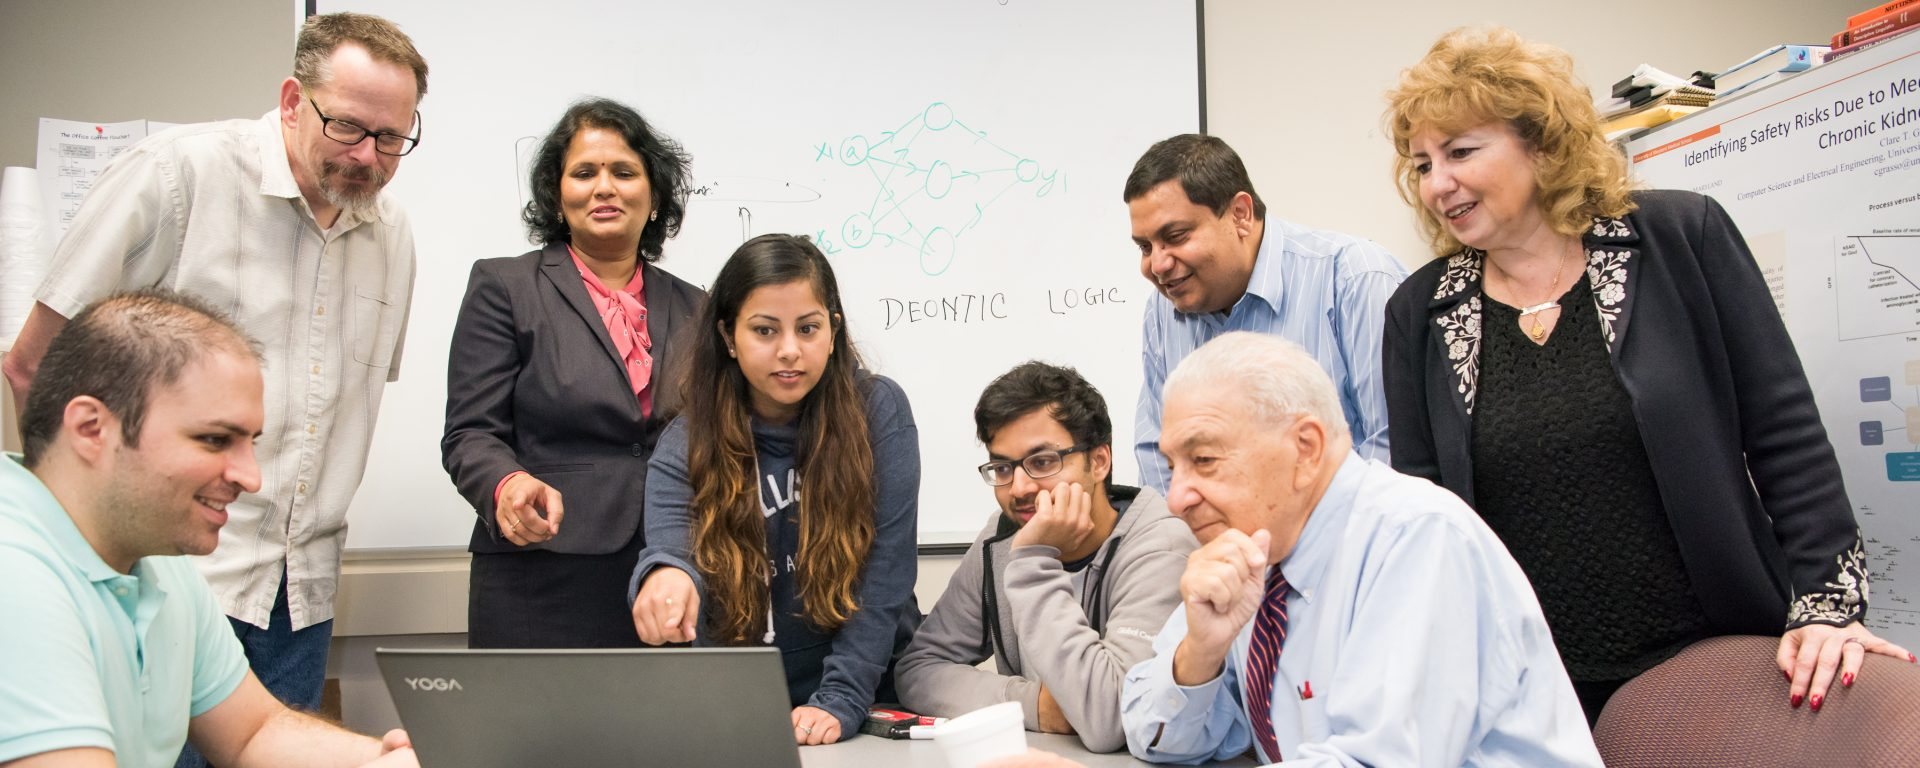 Prof. Joshi helps launch Center of Accelerated Real Time Analytics